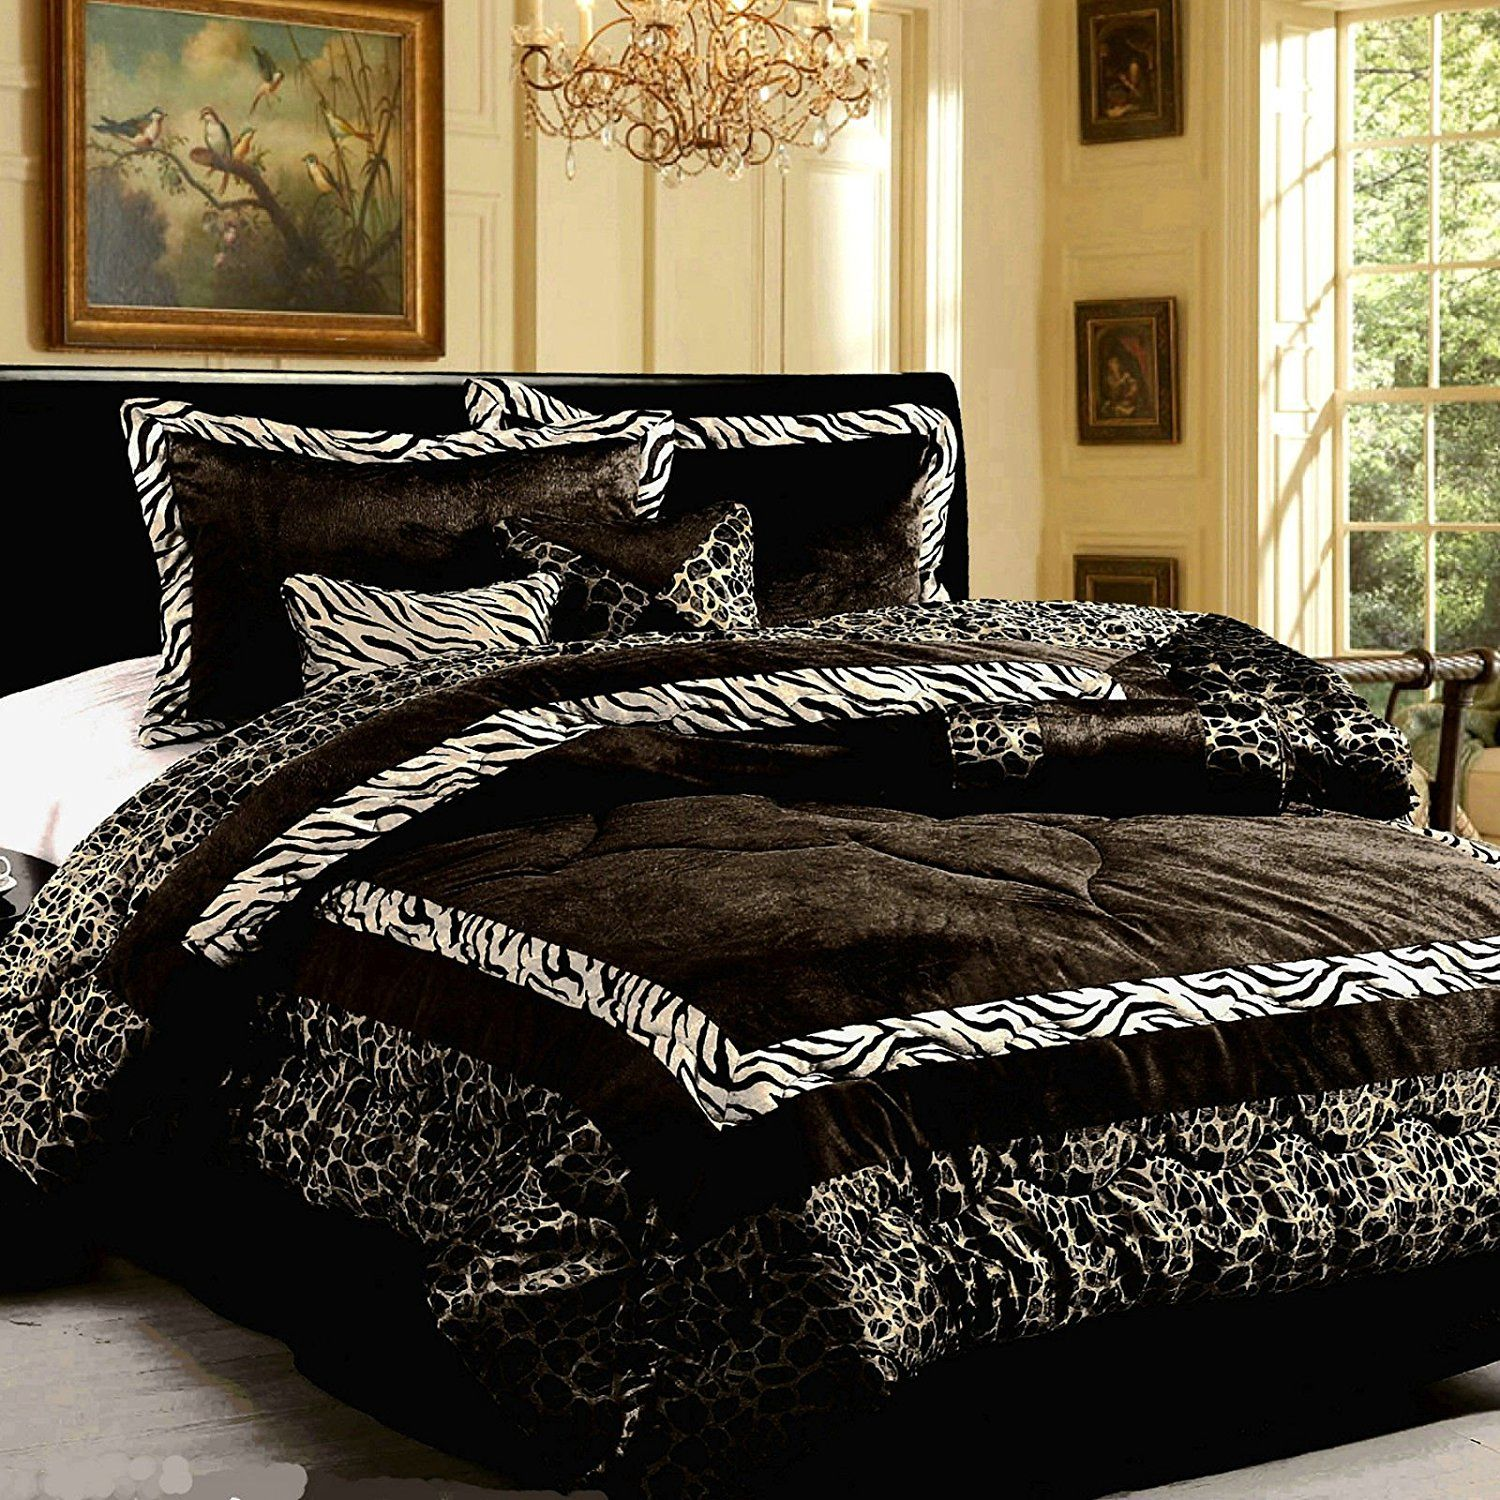 Dovedote Black Safari Zebra Animal Print forter Set QUEEN 7